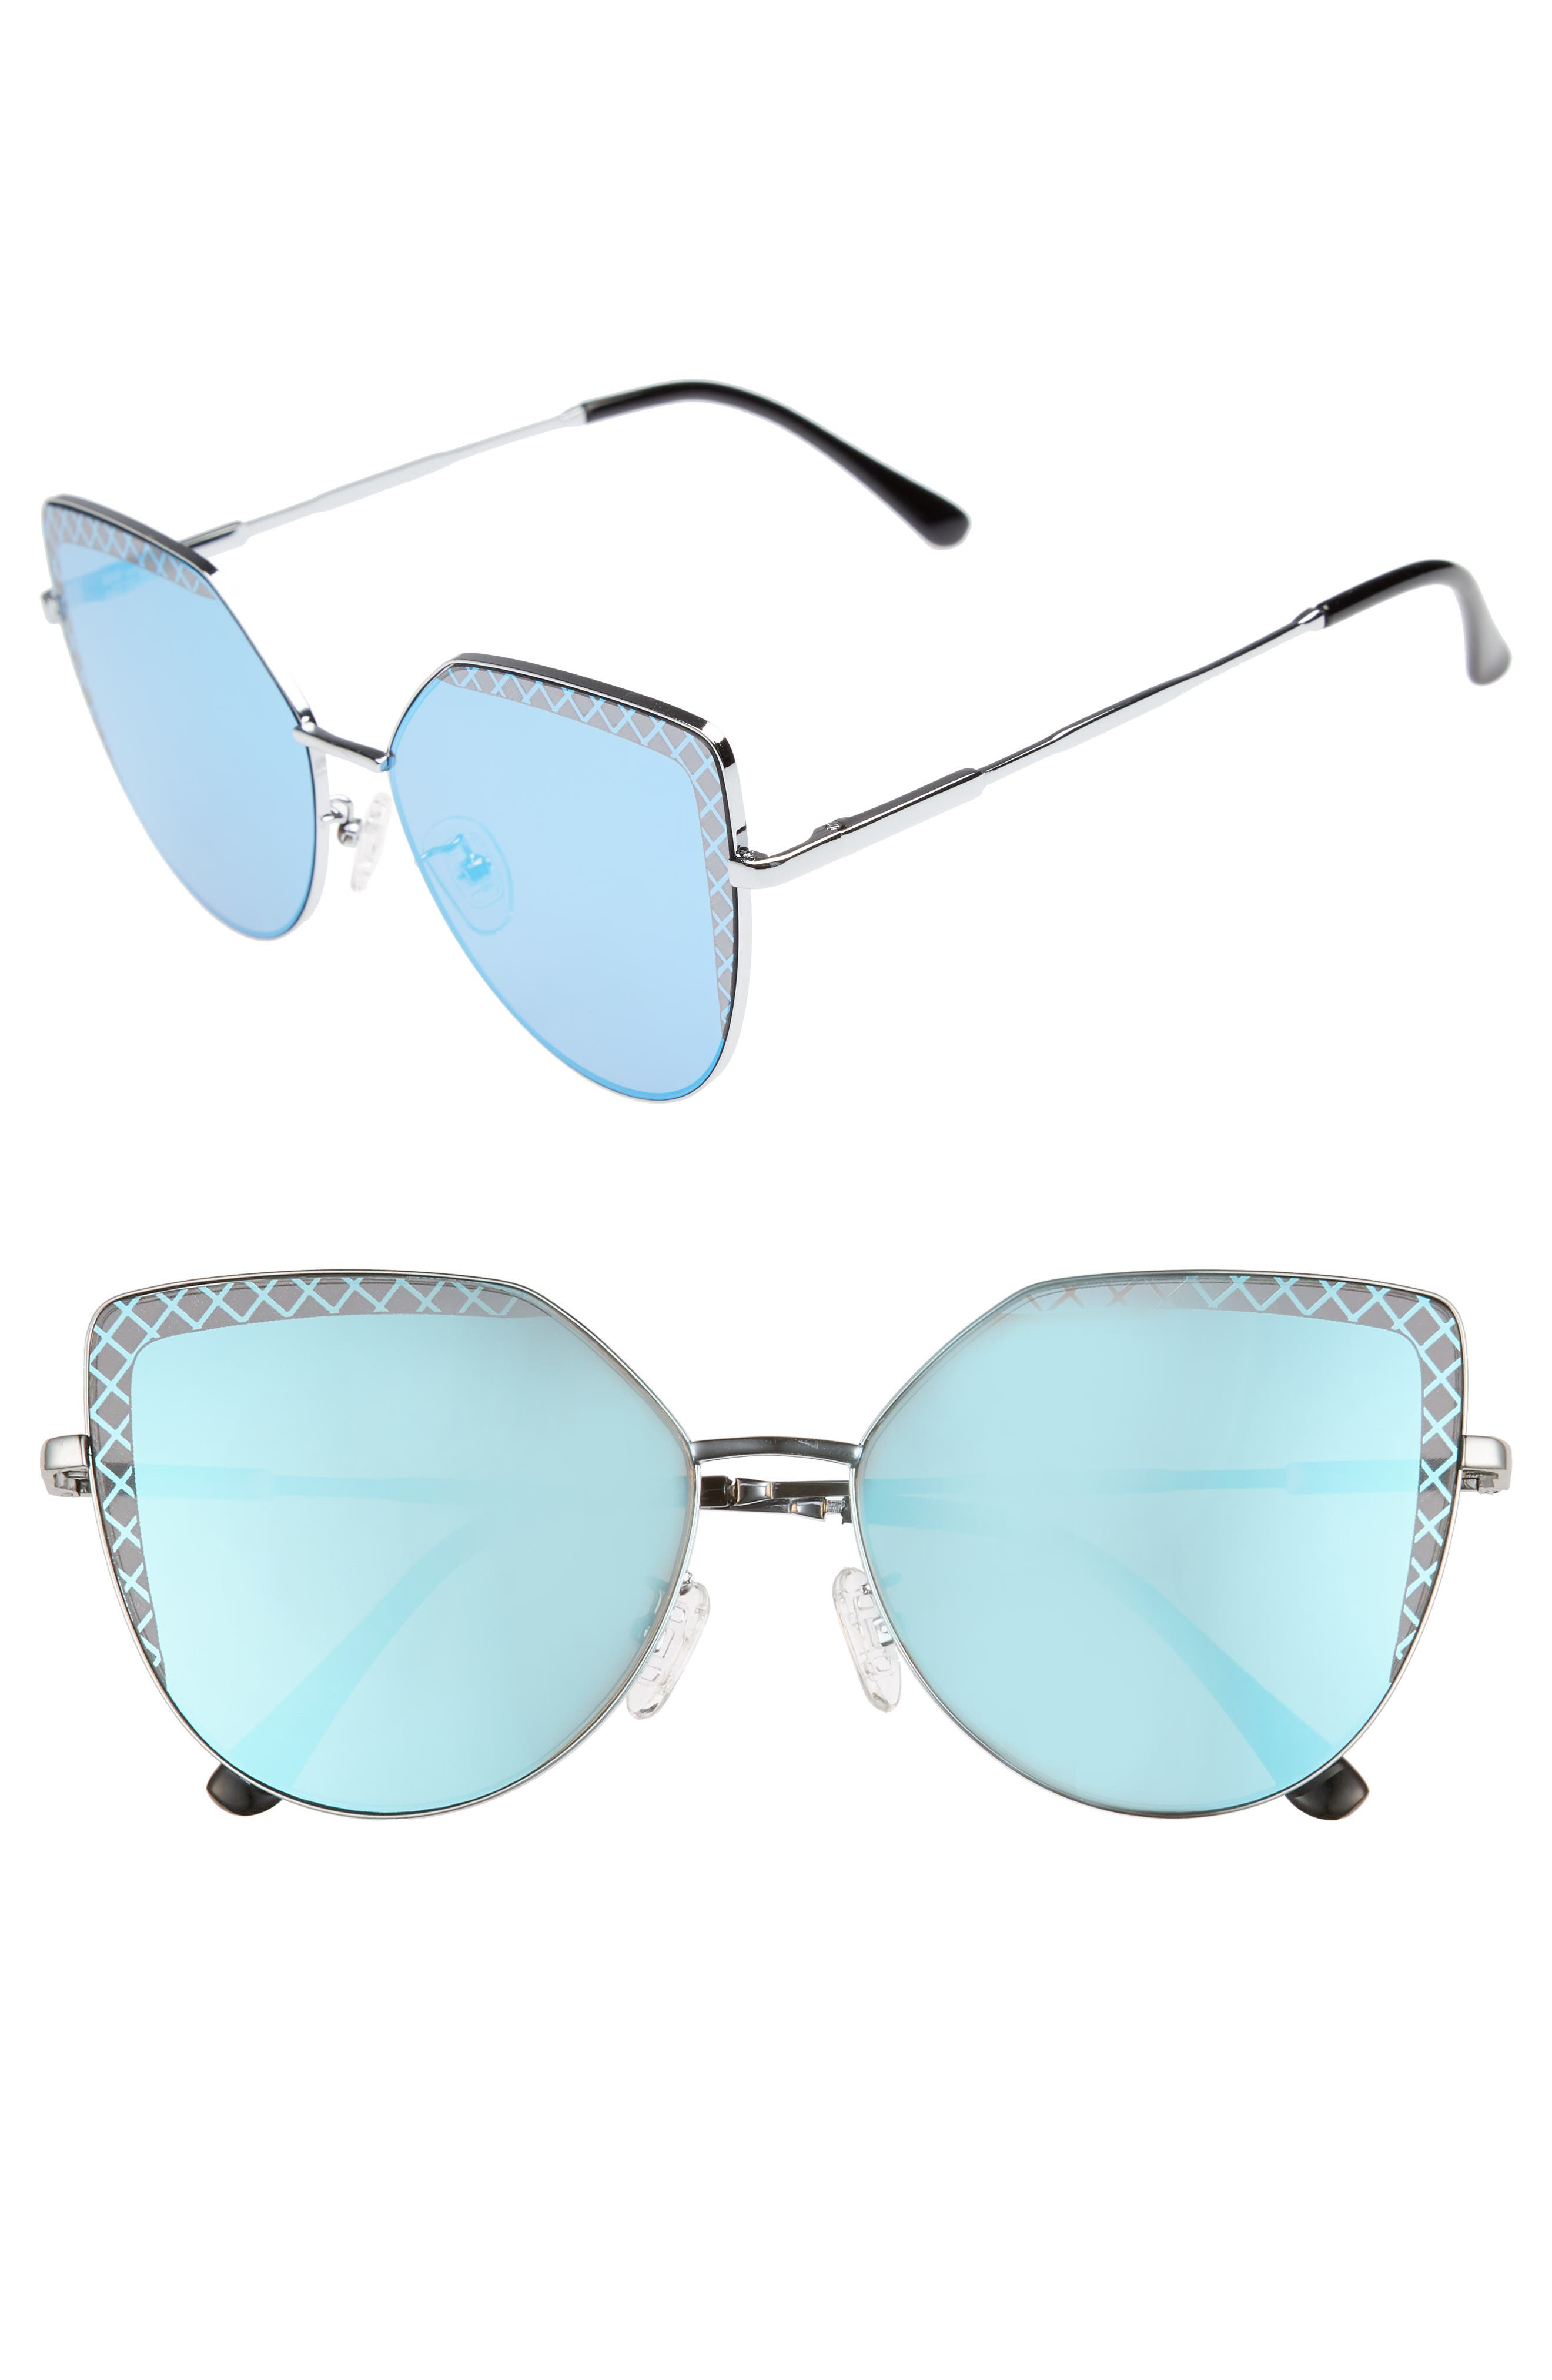 60mm Textured Lens Cat Eye Sunglasses,                         Main,                         color, Silver/ Blue